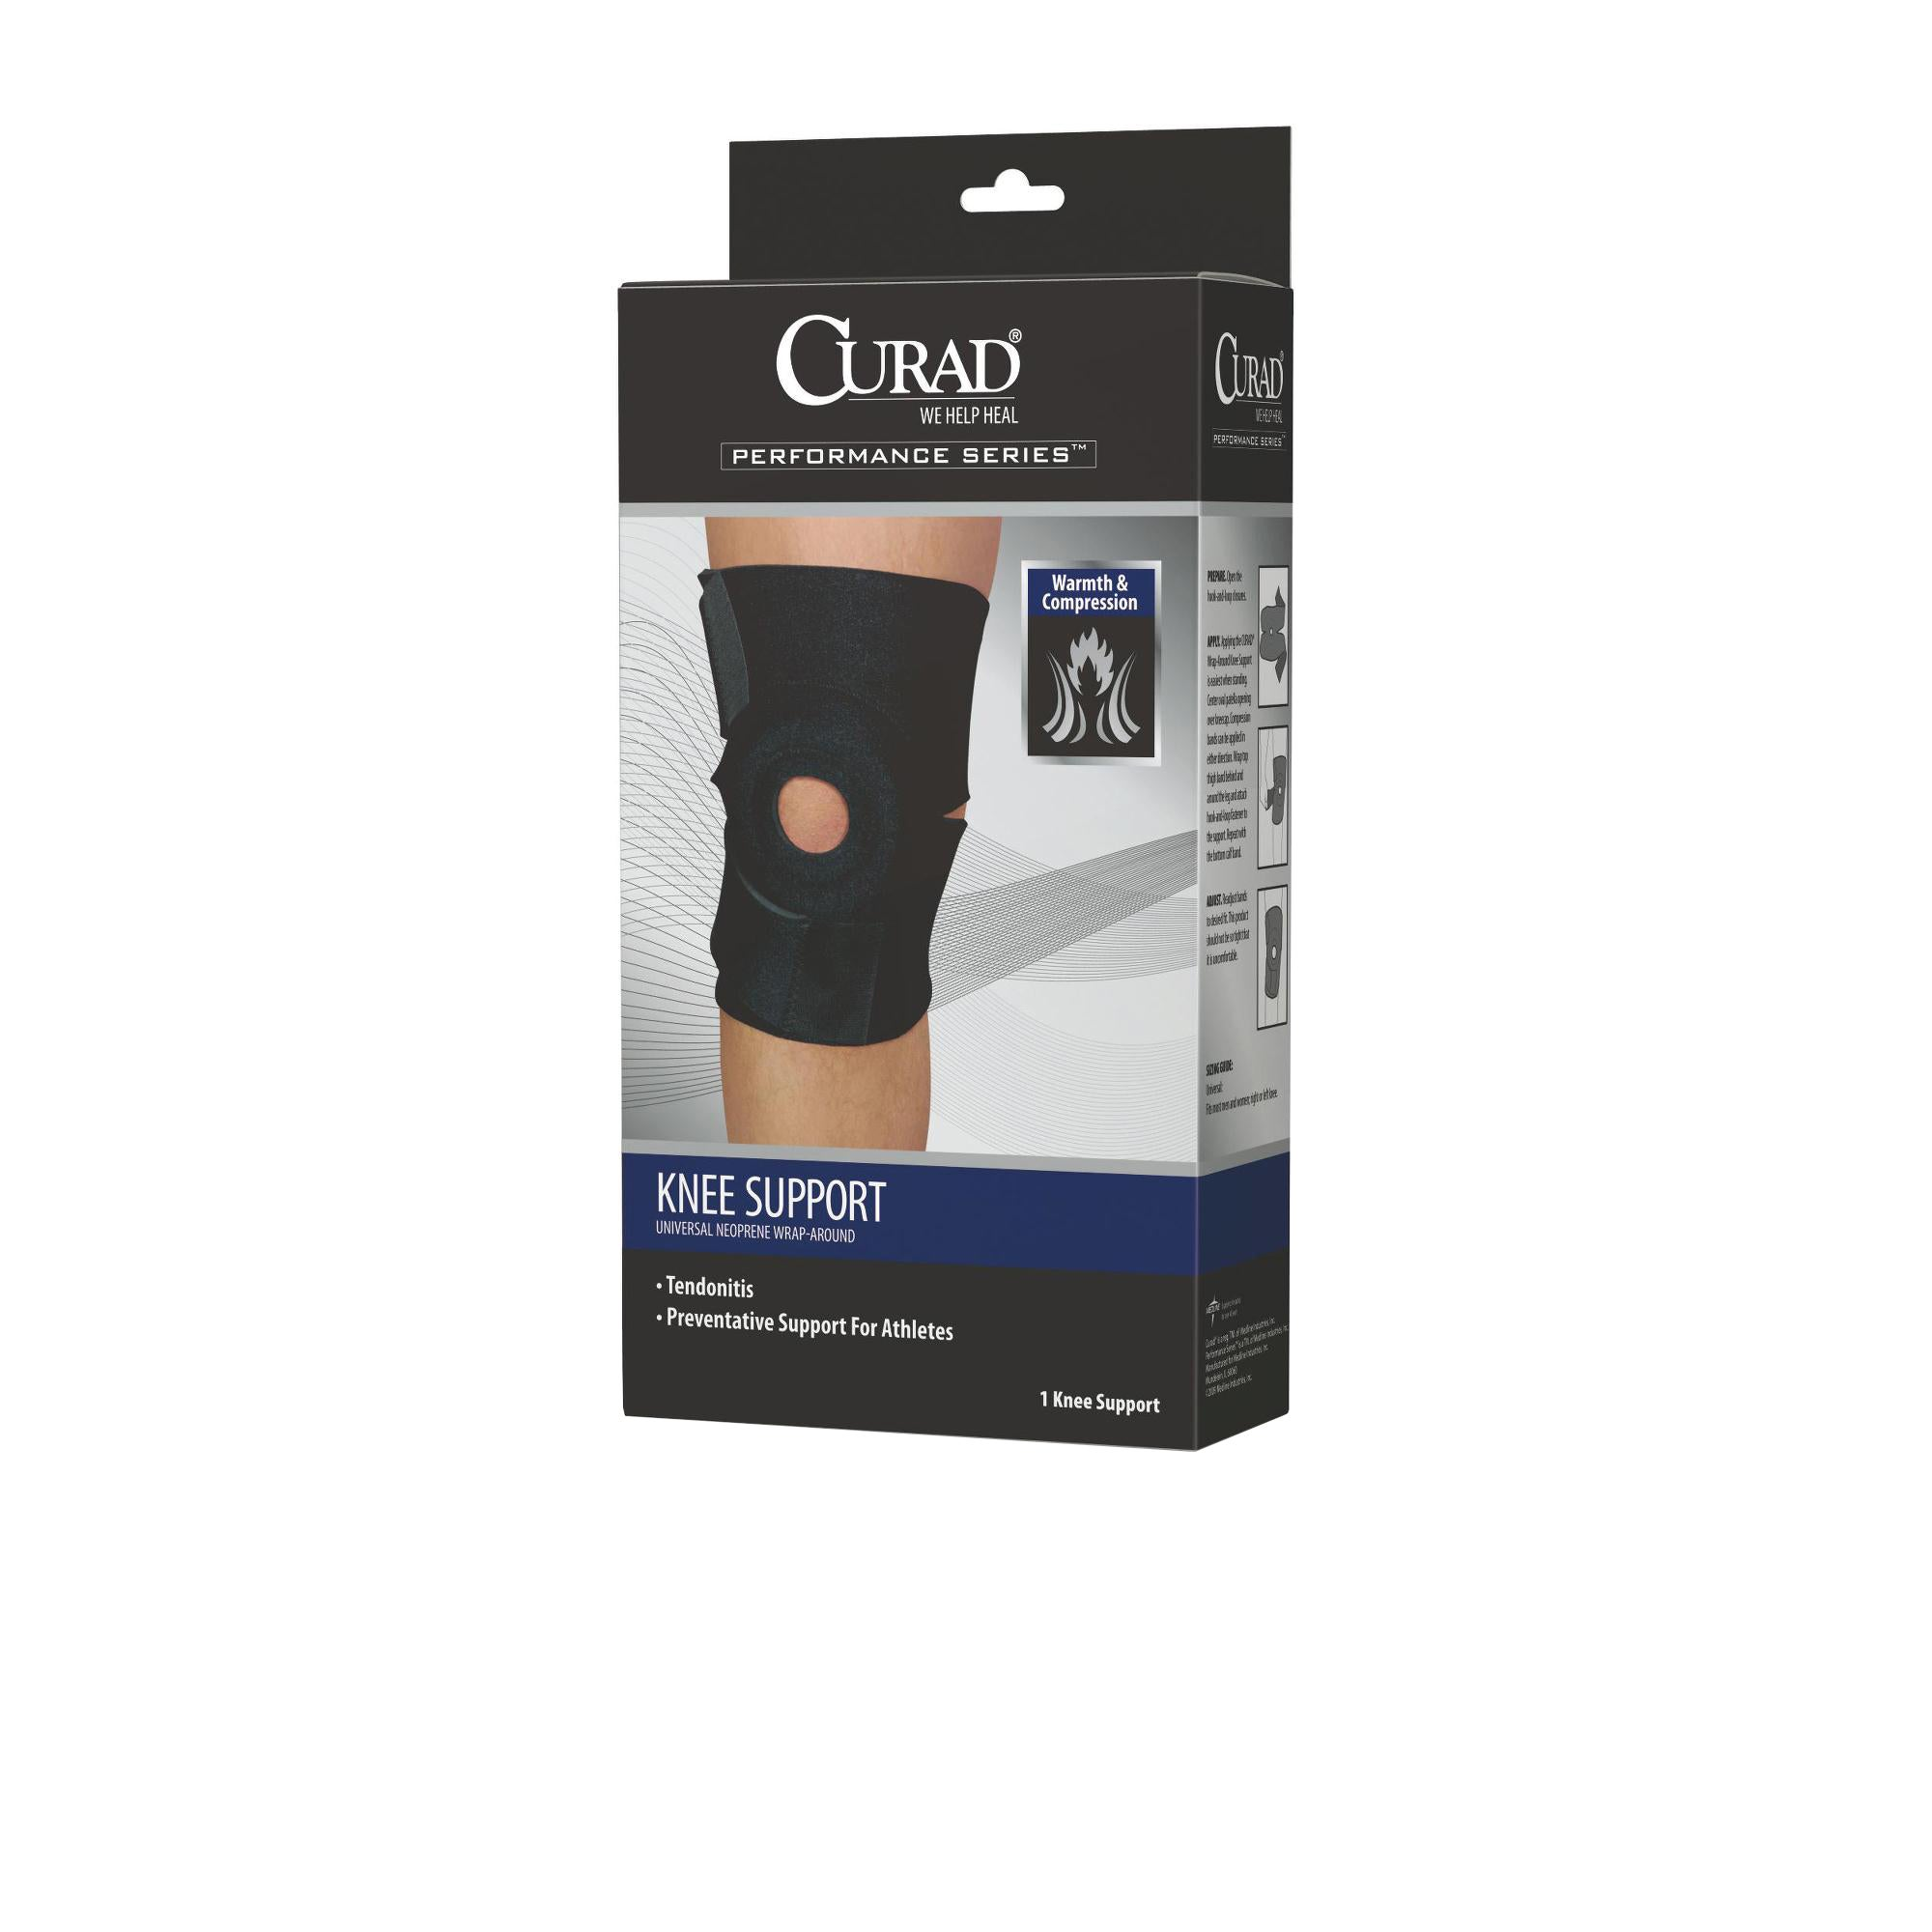 f8dc6b8c17 Shop Curad Universal Neoprene Wrap-Around Knee Support - Free Shipping On  Orders Over $45 - Overstock - 15097346